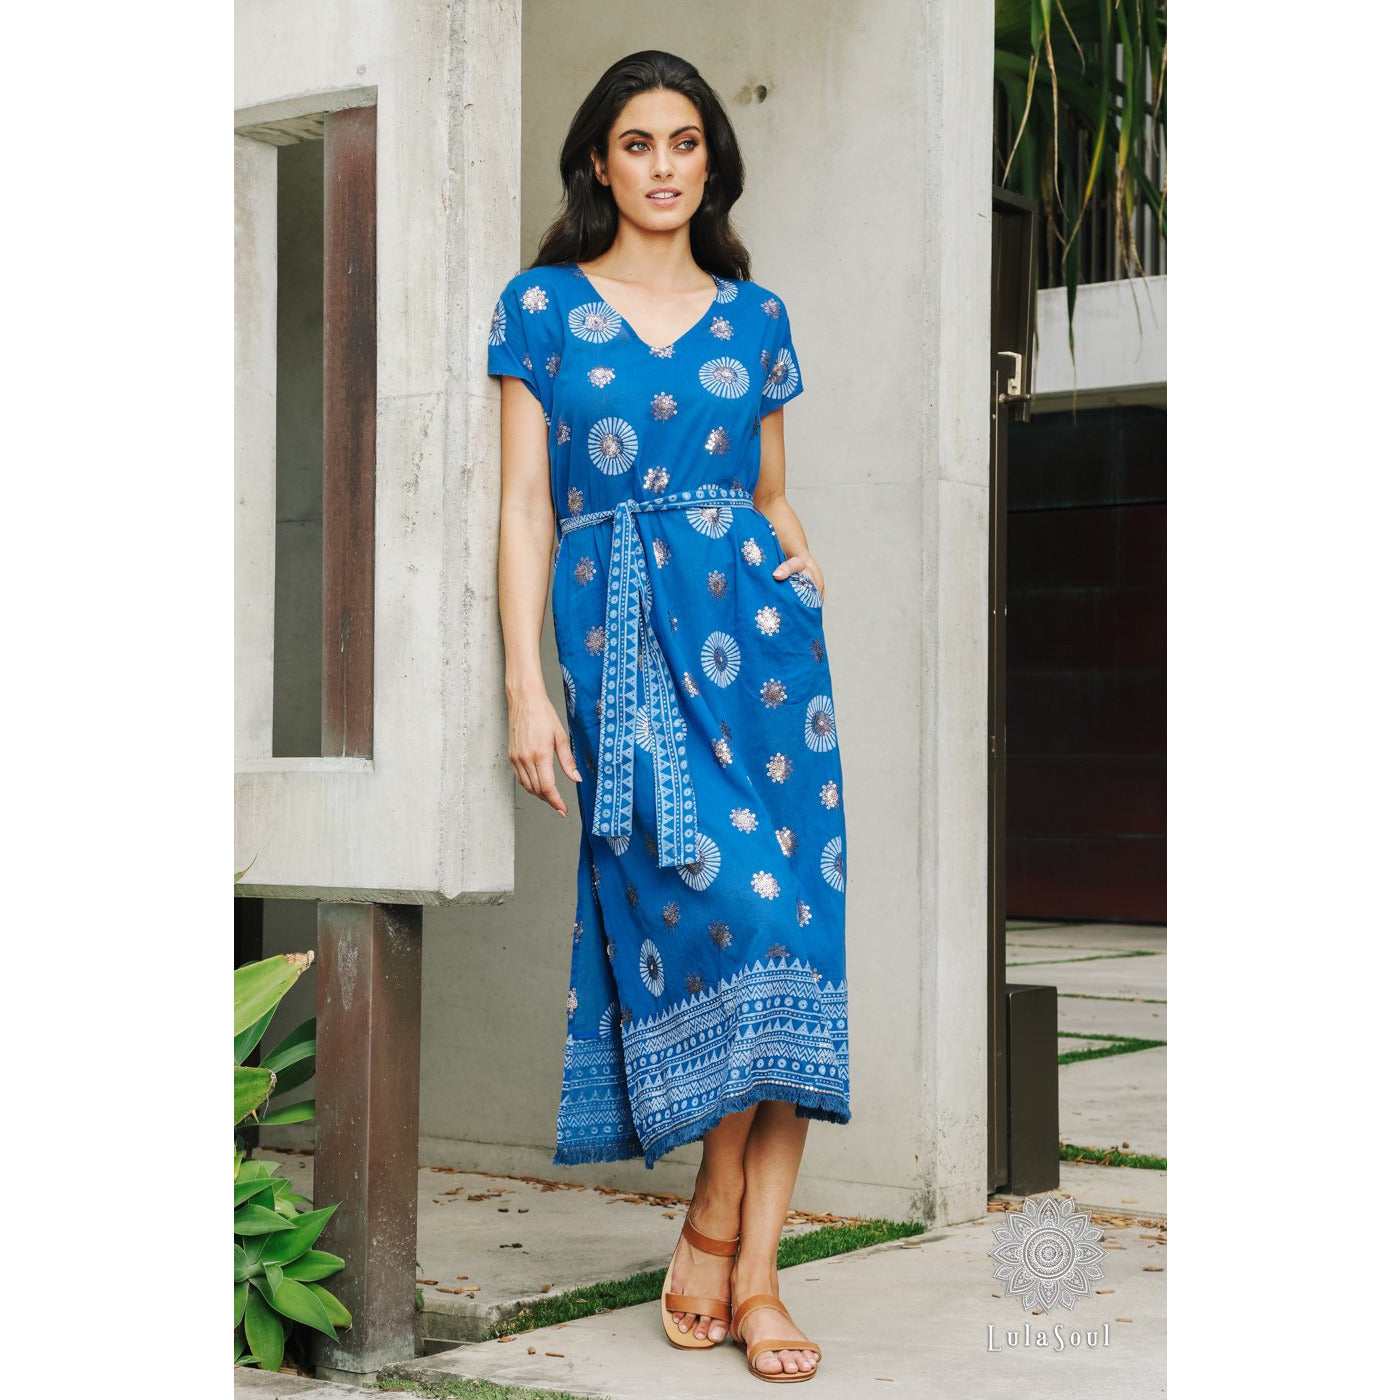 Lula Soul Lydia Midi Dress in Ocean